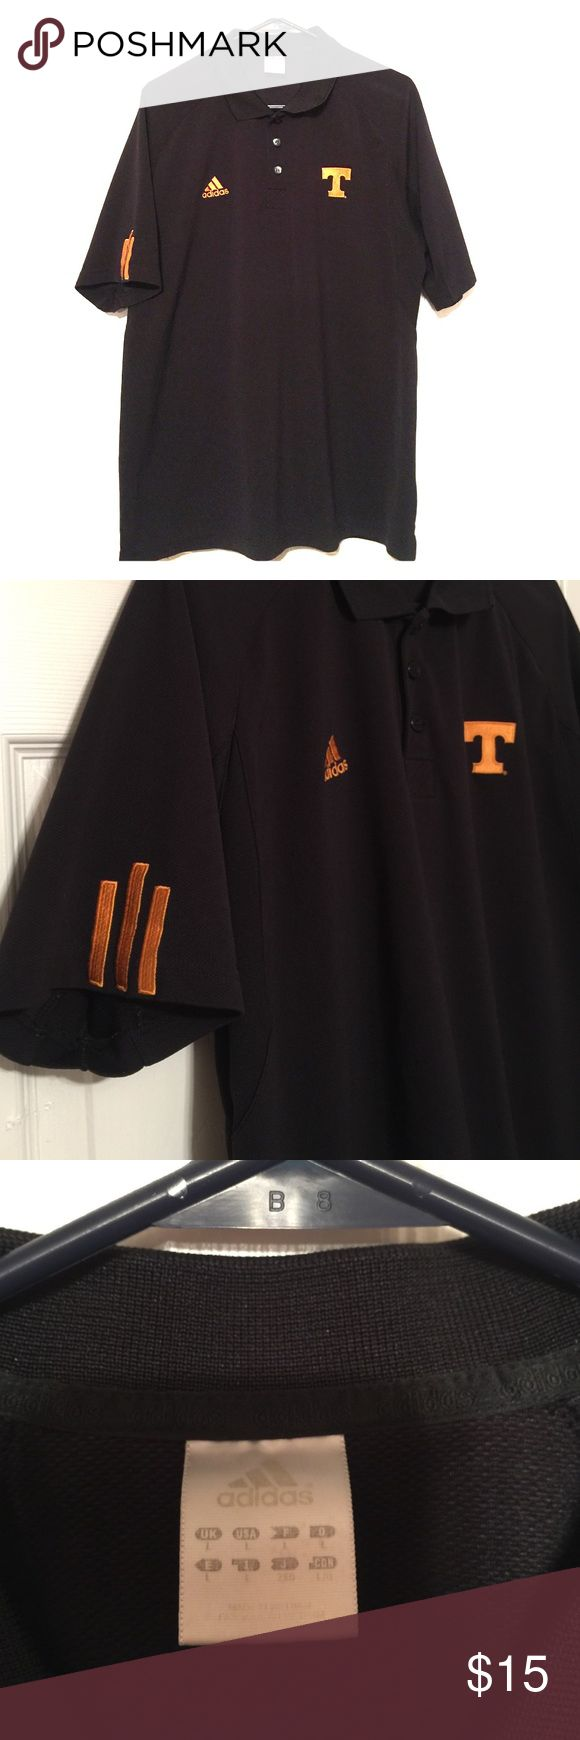 TN VOLS Adidas men's tee TN VOLS adidas men's tee excellent condition size LG Adidas Shirts Tees - Short Sleeve